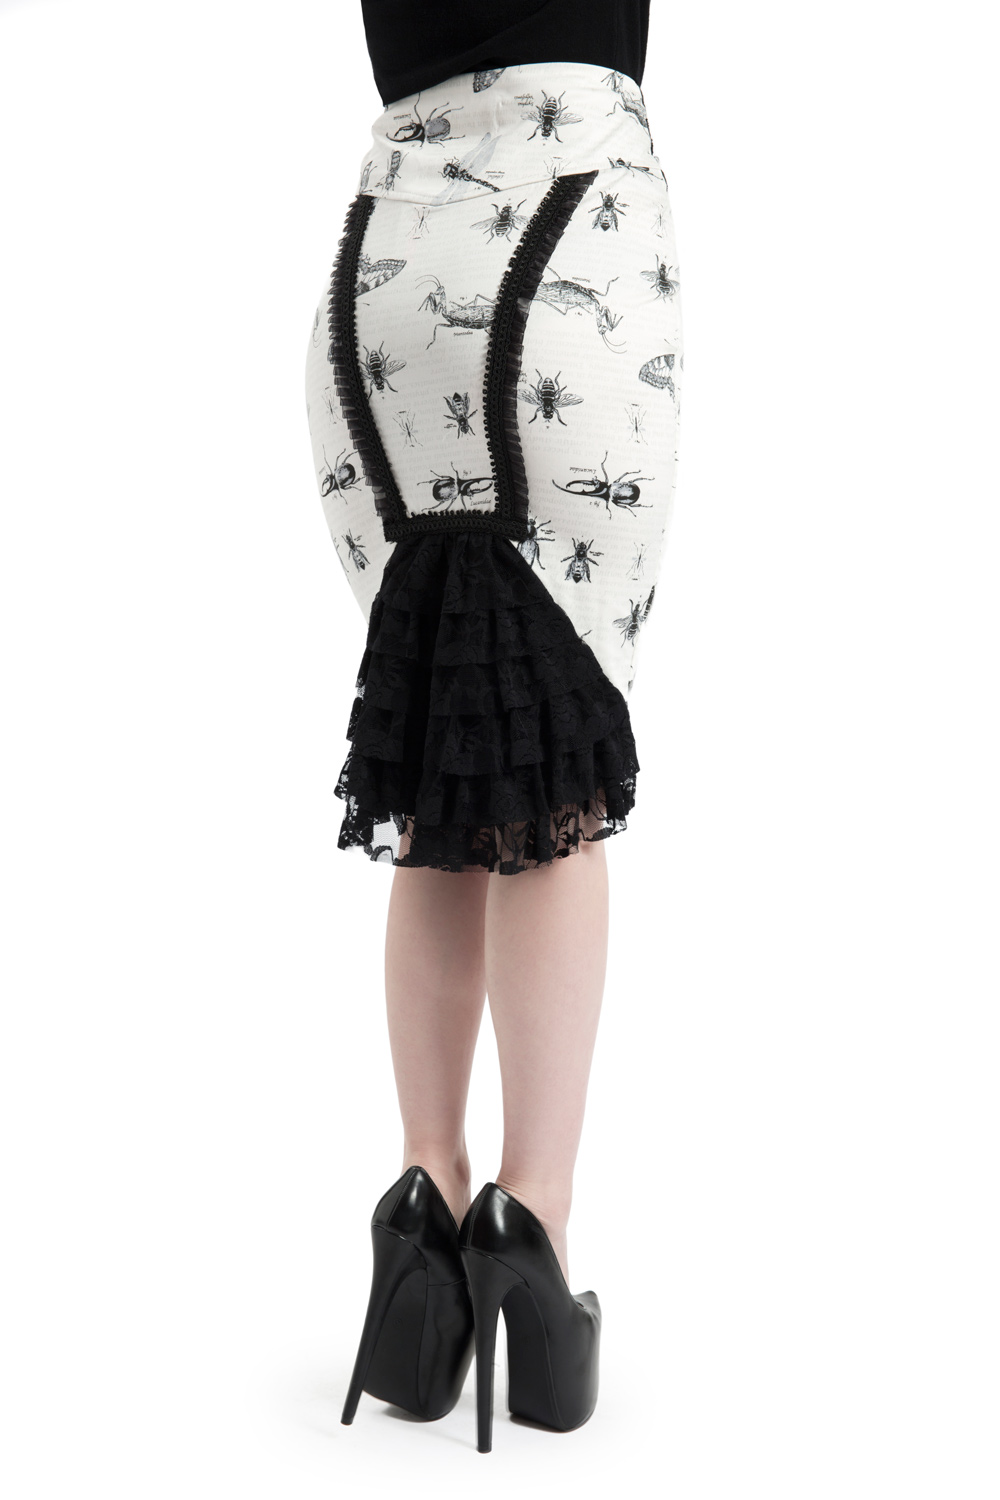 Fran Insect Print White Skirt